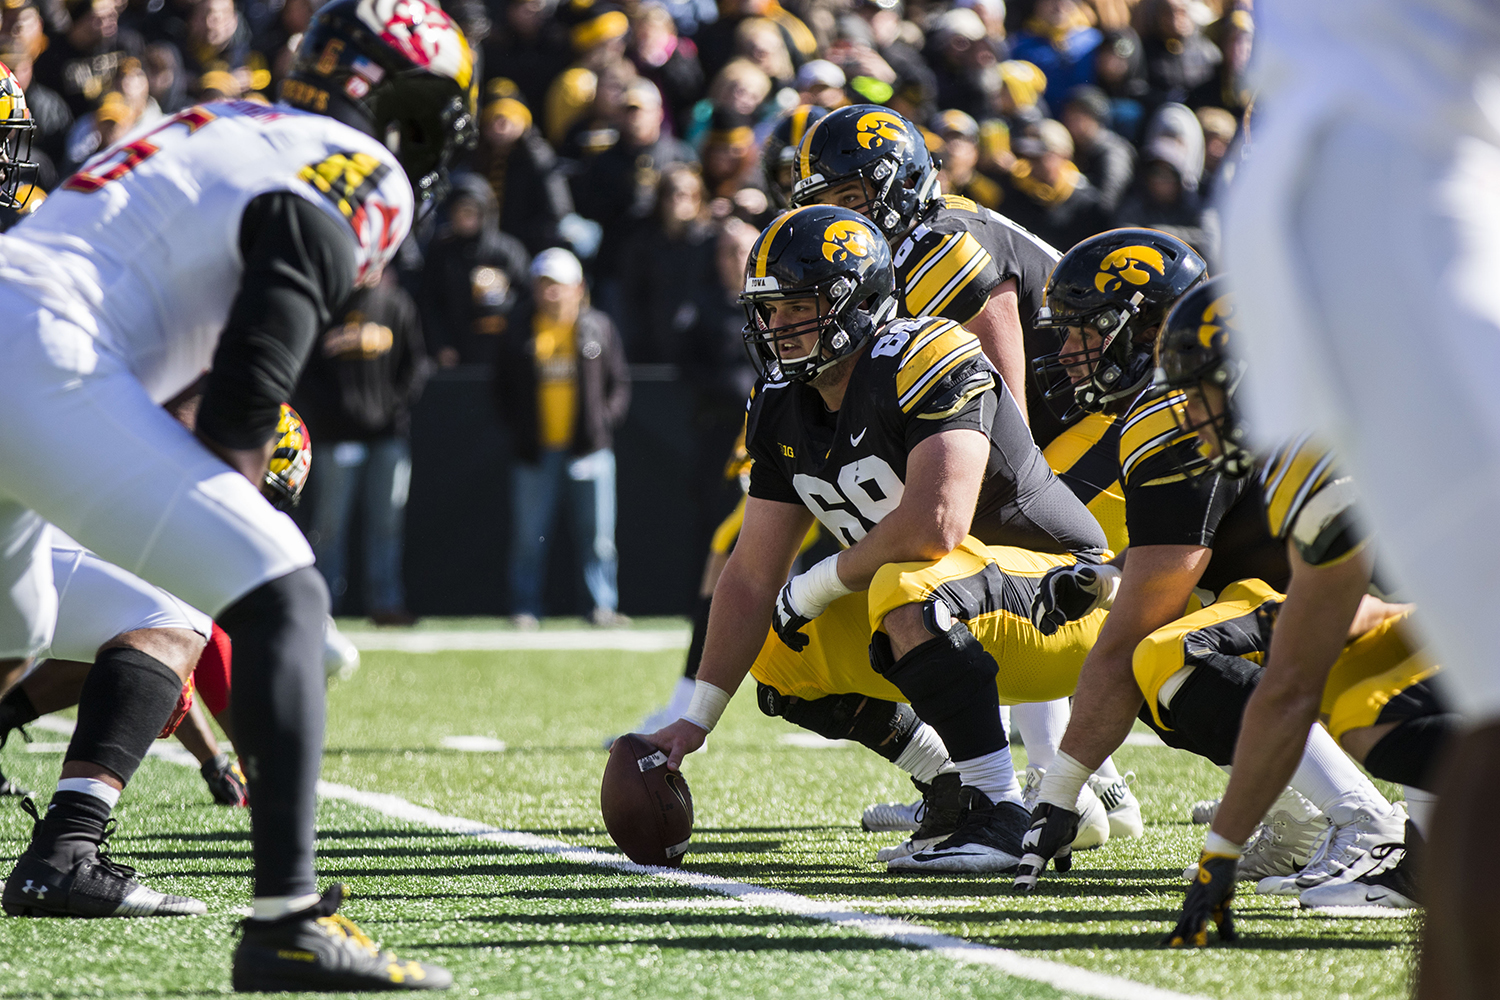 Iowa+offensive+lineman+Keegan+Render+waits+at+the+line+of+scrimmage+during+the+Iowa%2FMaryland+homecoming+football+game+at+Kinnick+Stadium+on+Saturday%2C+October+20%2C+2018.+The+Hawkeyes+defeated+the+Terrapins%2C+23-0.